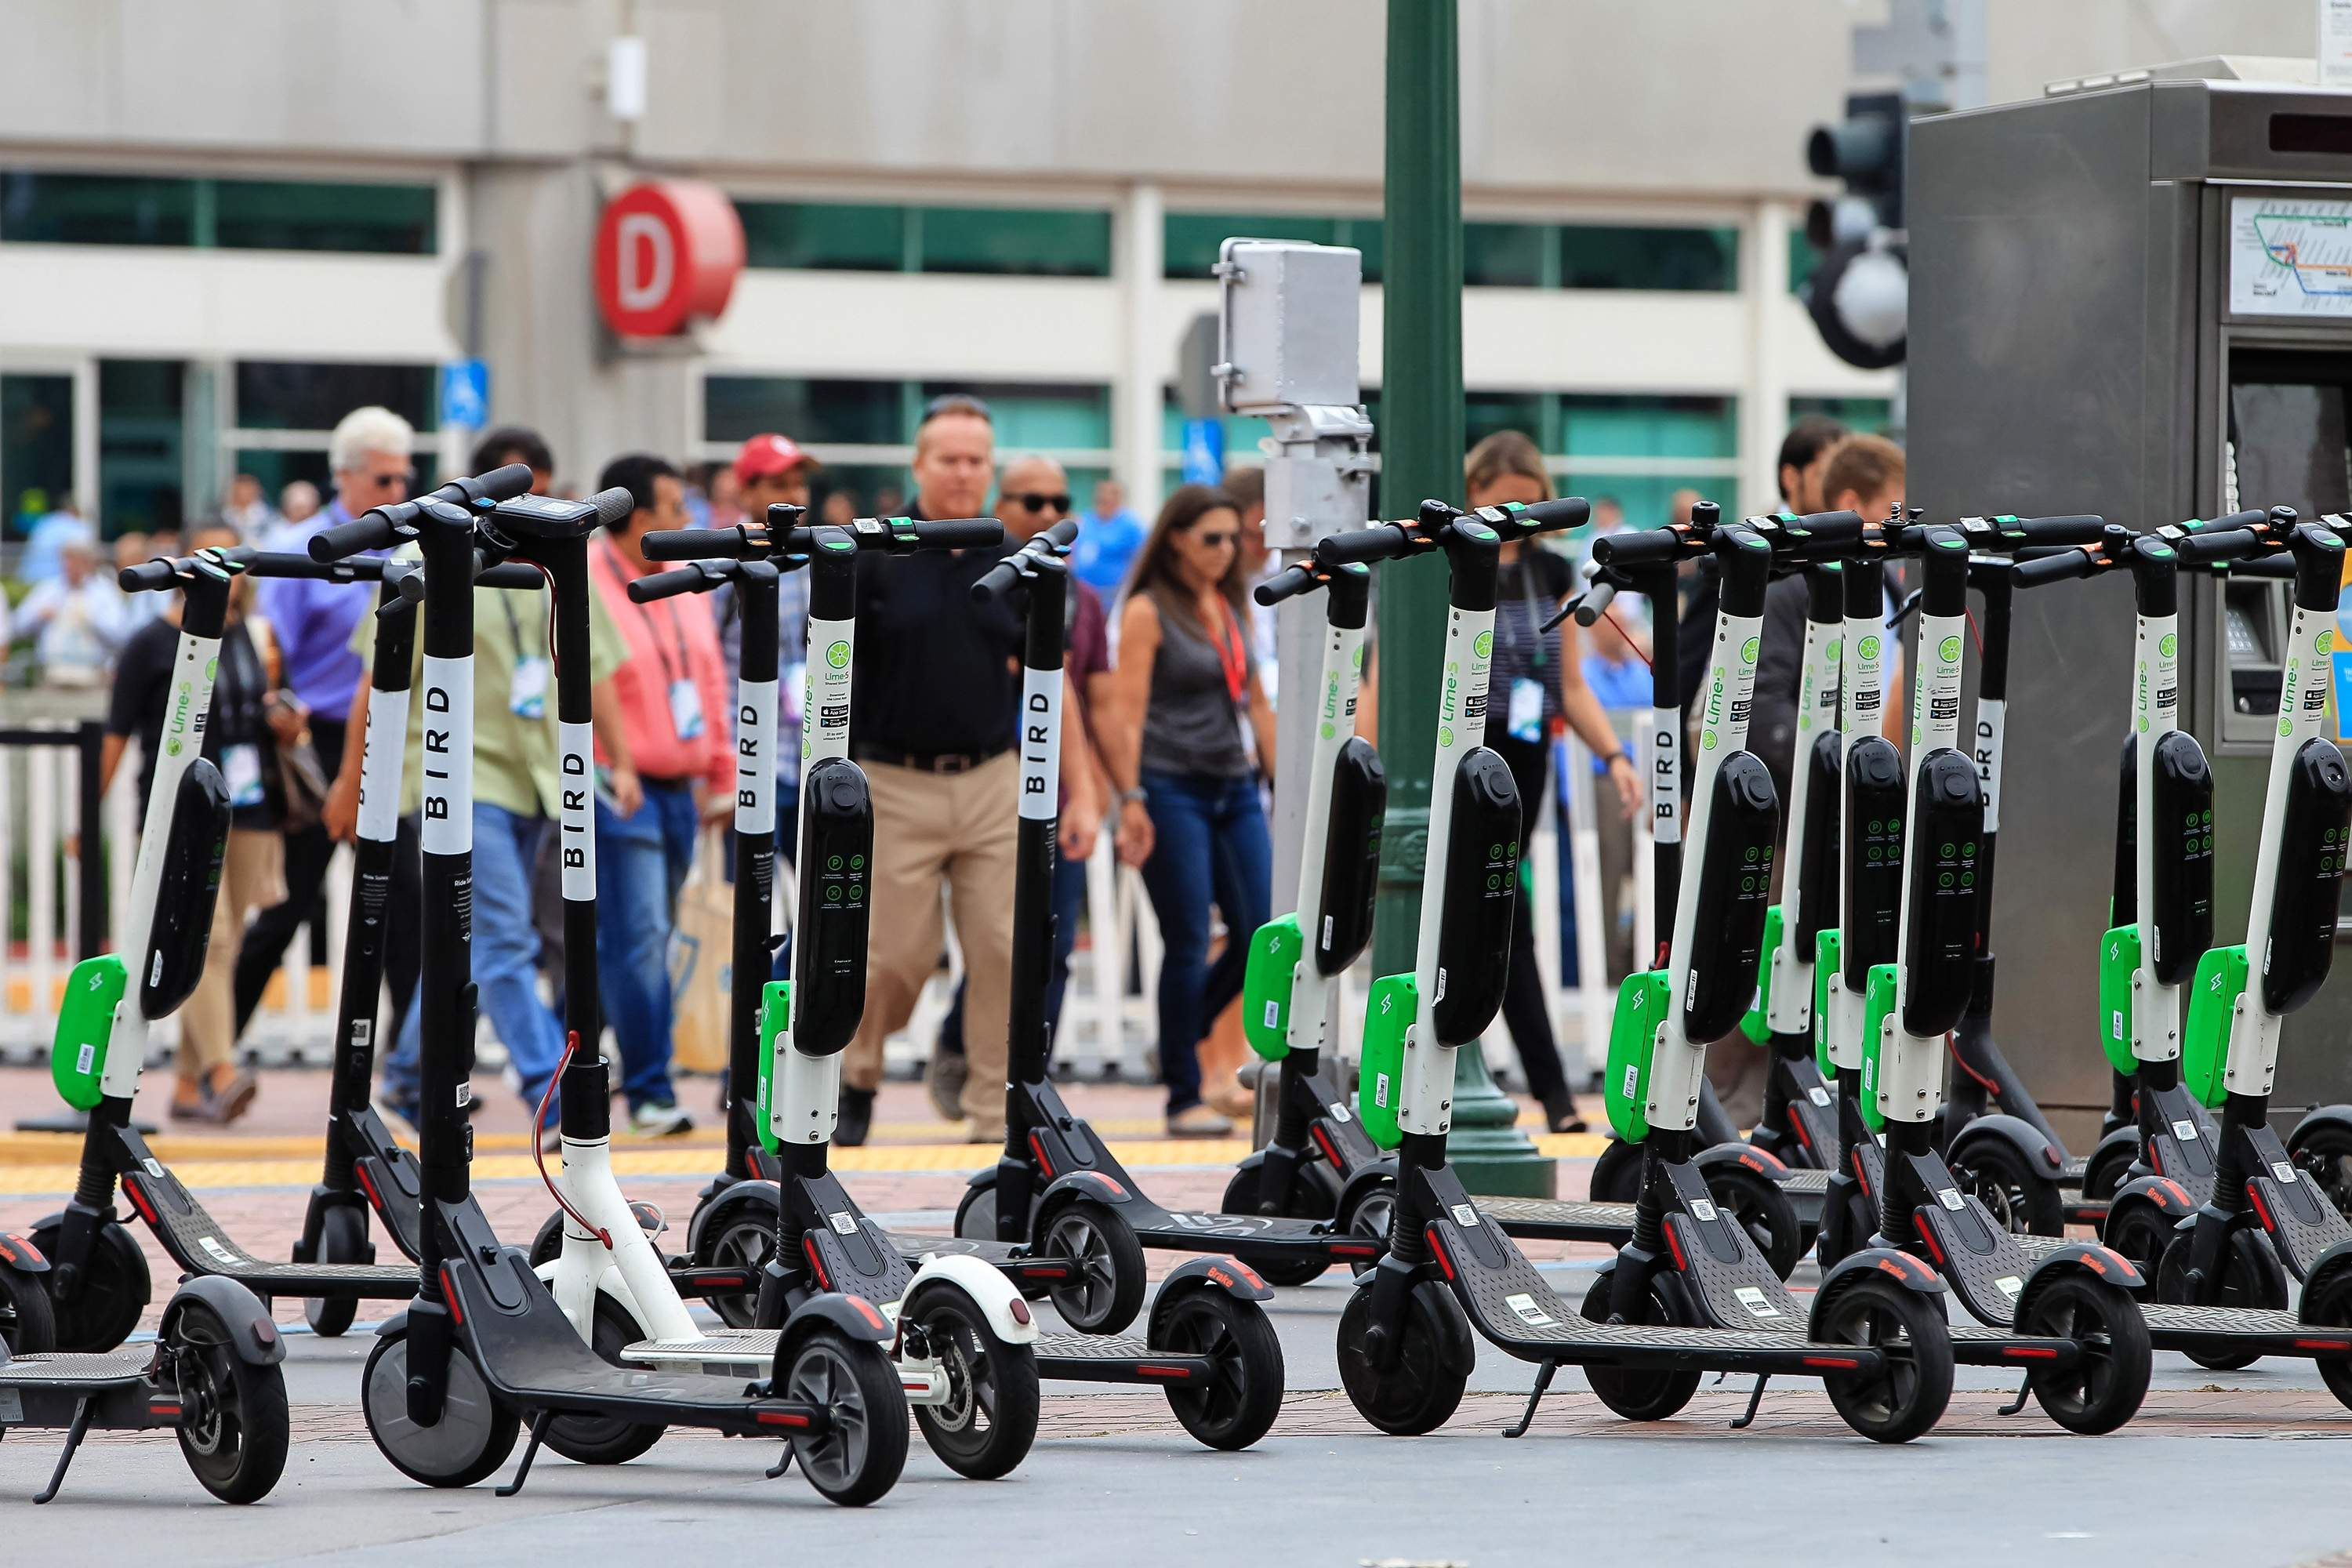 Editorial: Scooters are coming, and Tampa Bay should be prepared